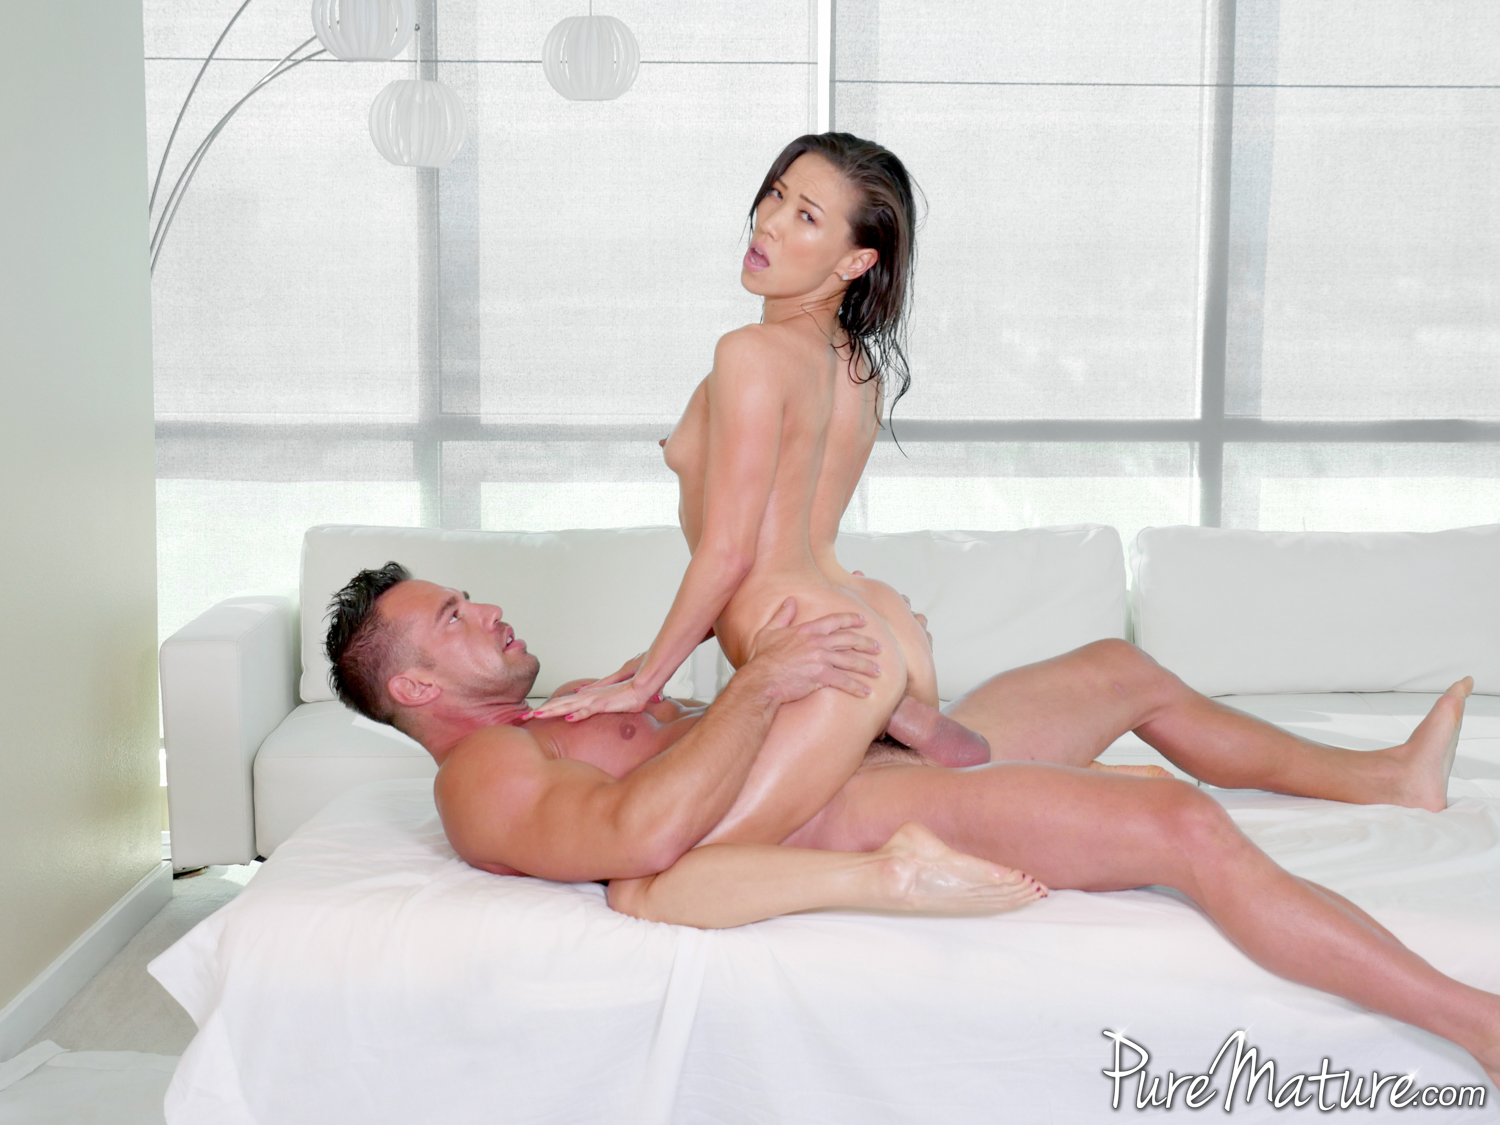 The dick riding queen rides the dick till she drips sweat 6